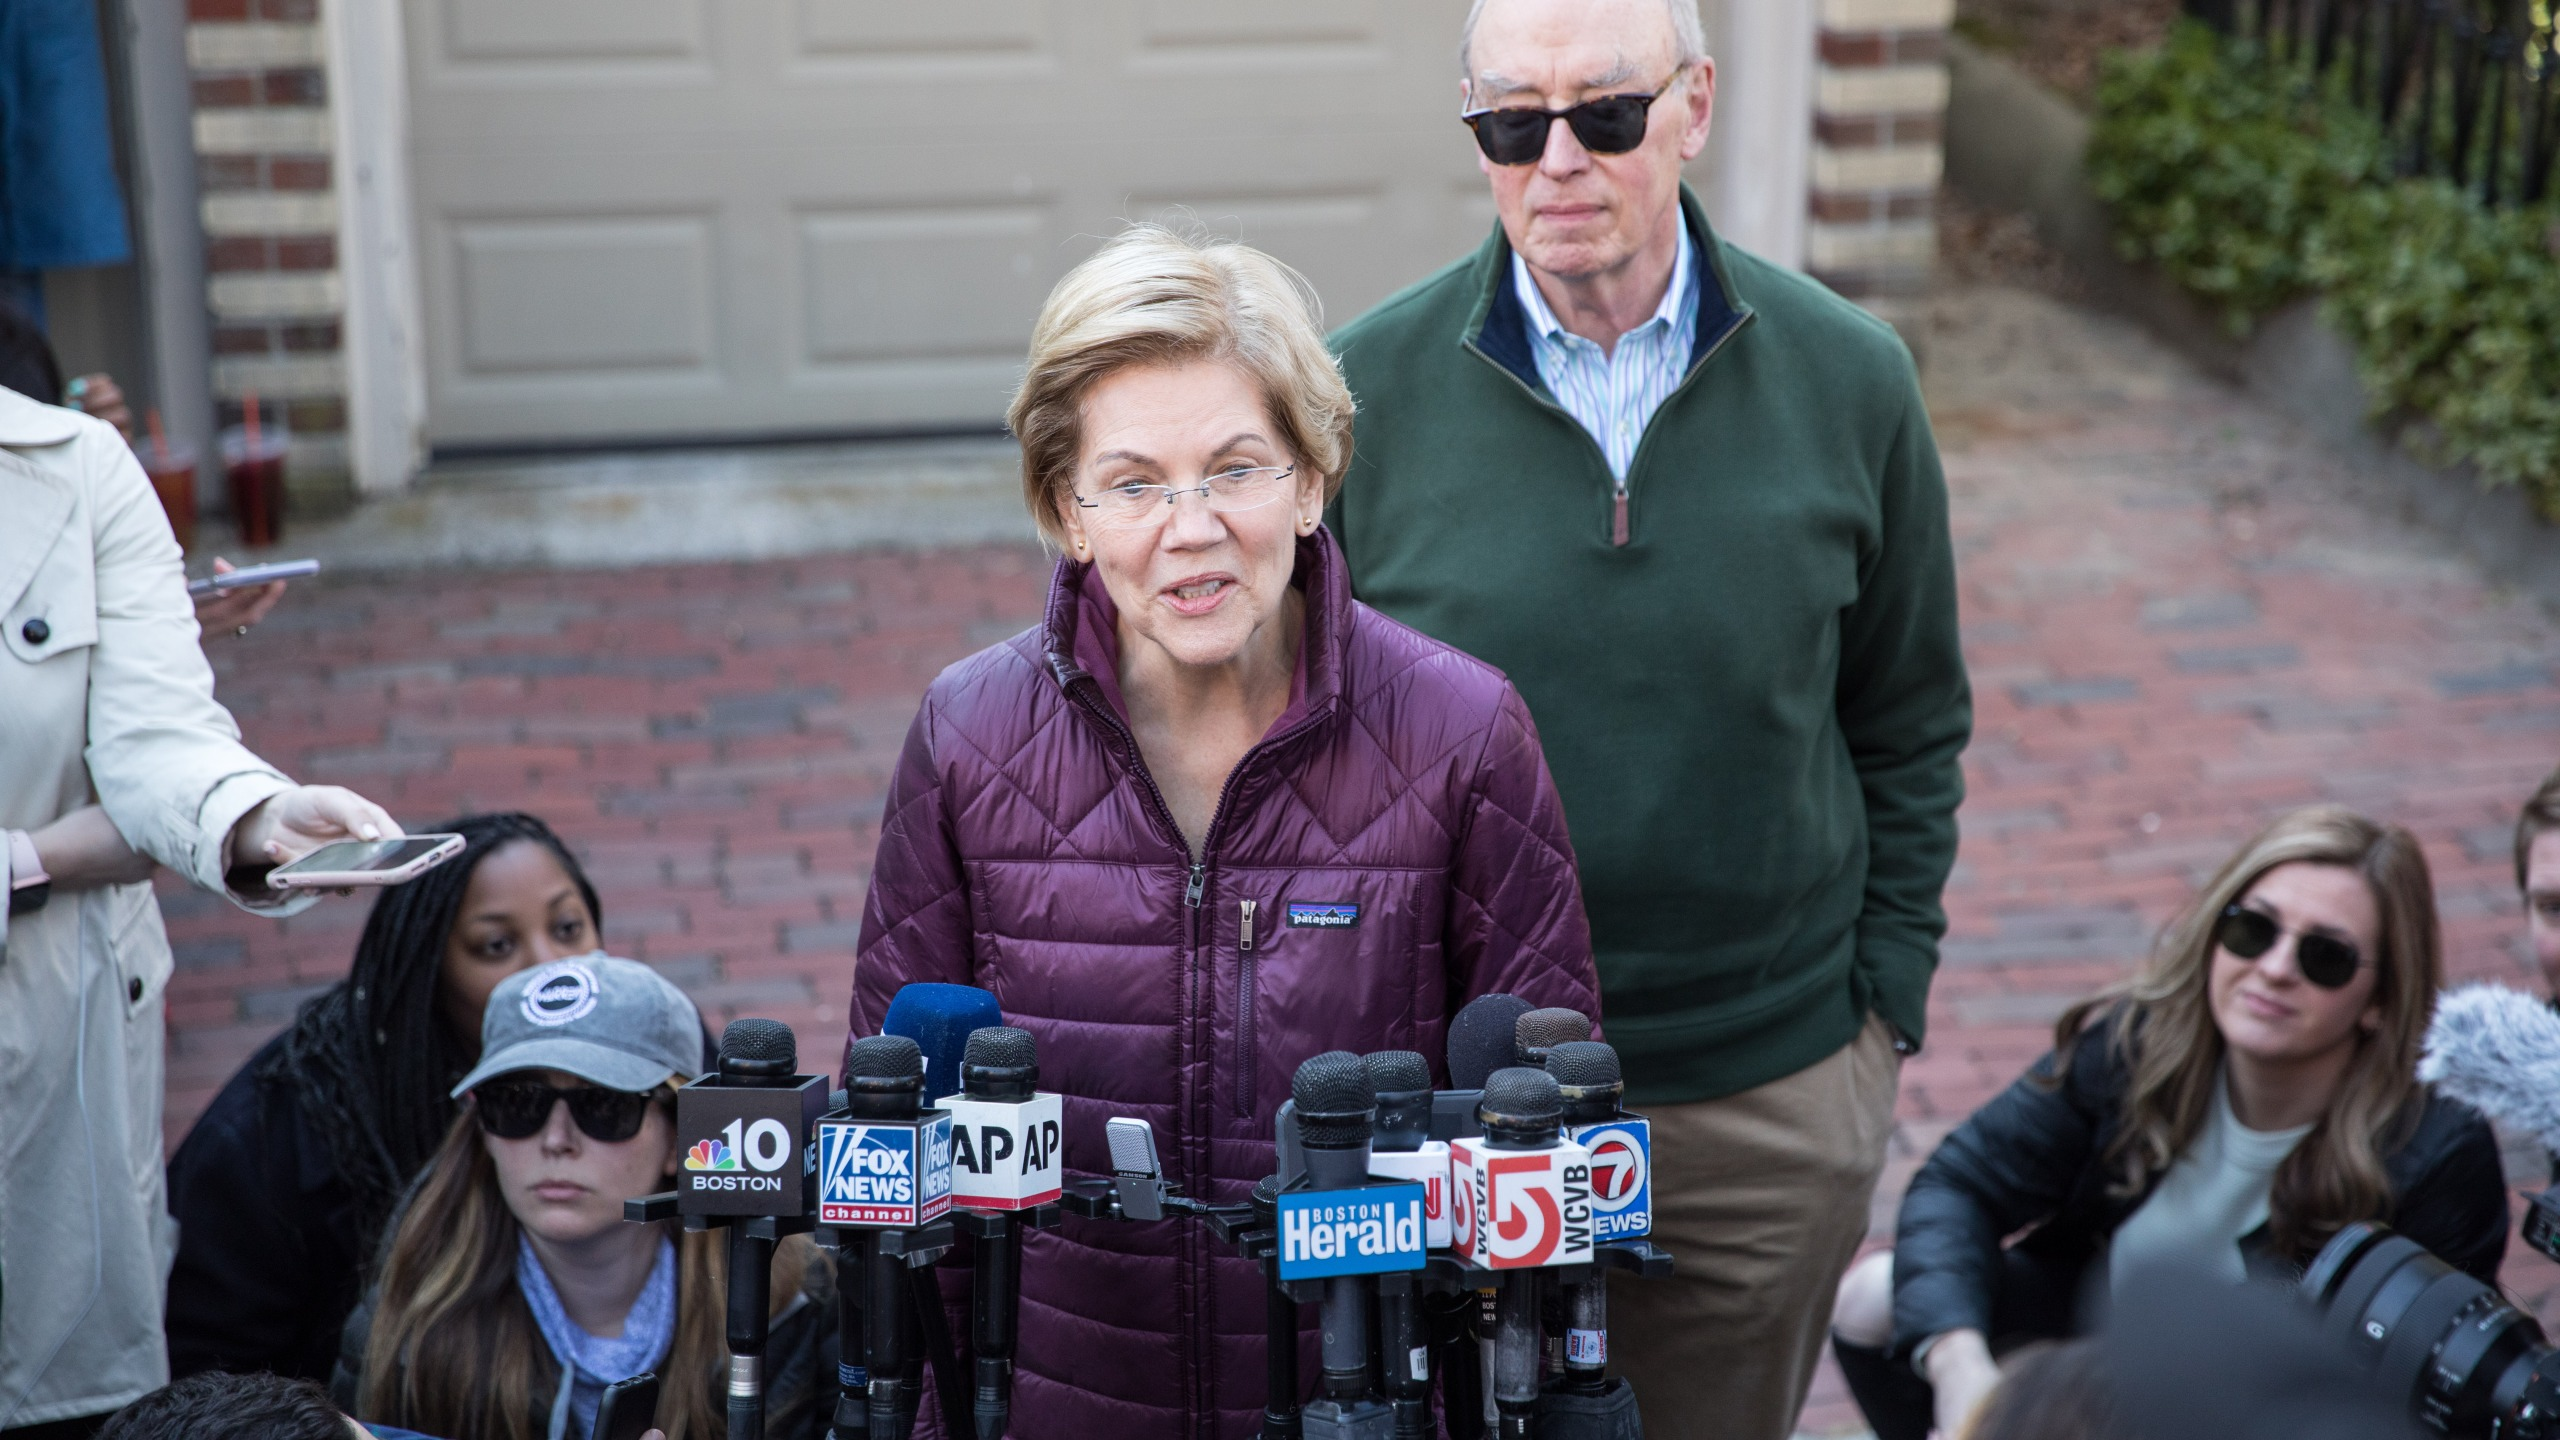 Sen. Elizabeth Warren (D-MA), with husband Bruce Mann, announces that she is dropping out of the presidential race during a media availability outside of her home on March 5, 2020 in Cambridge. (Scott Eisen/Getty Images)